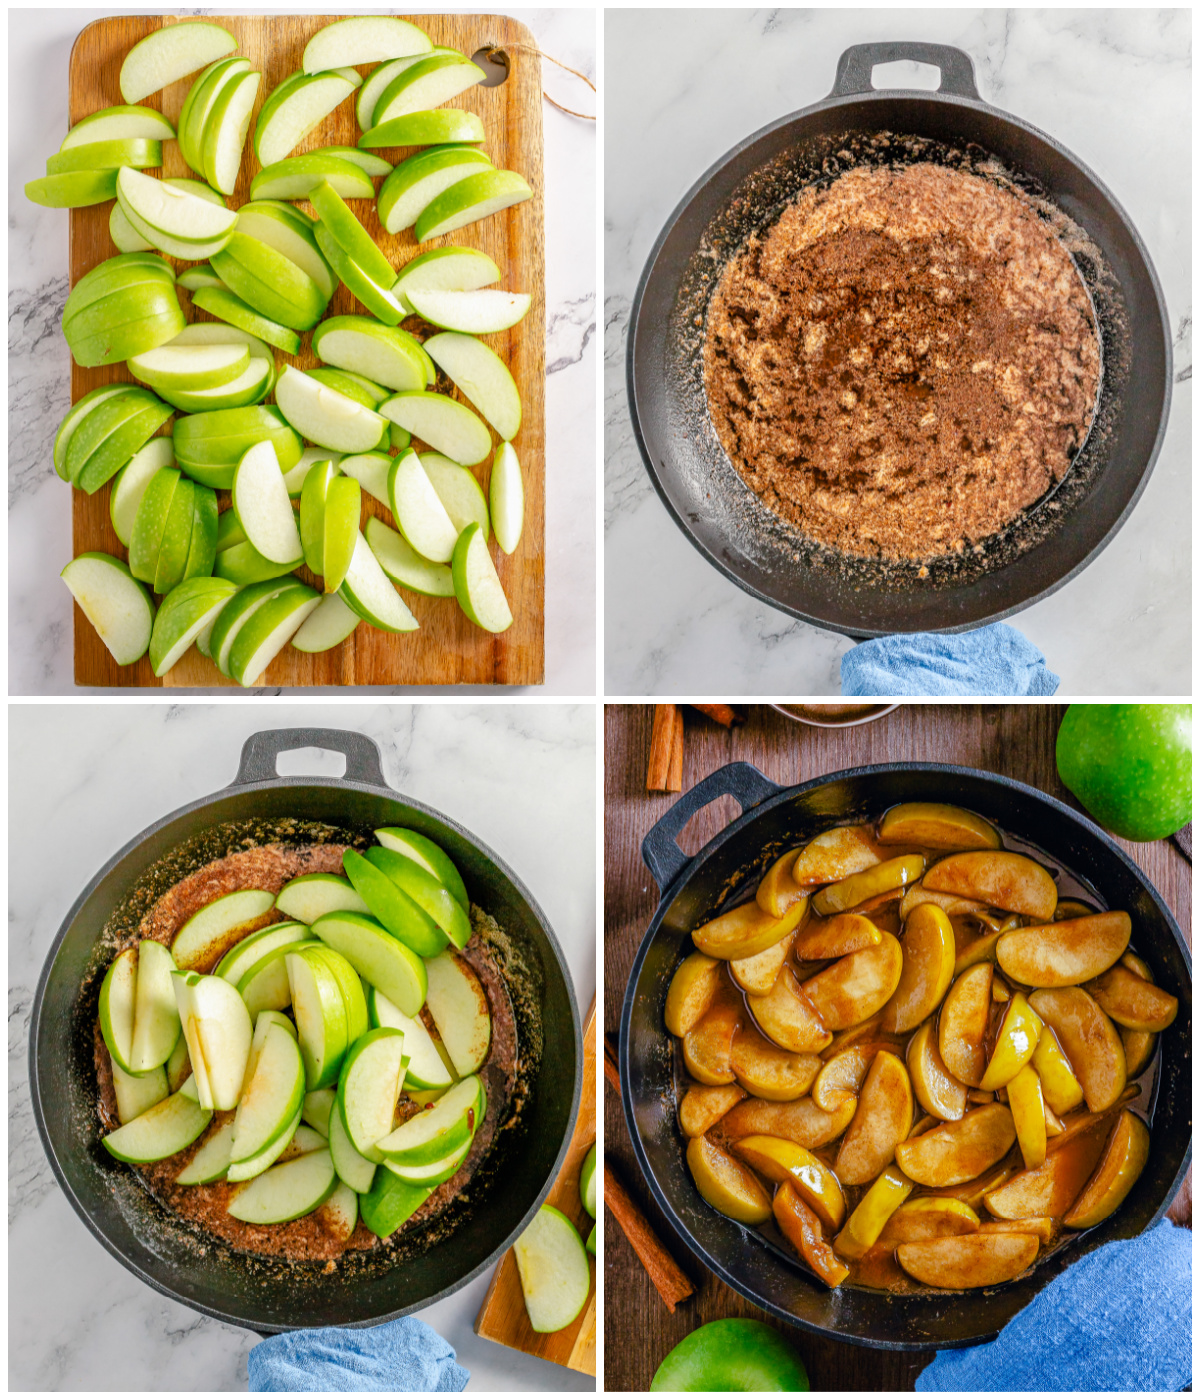 Step by step photos on how to make Fried Apples